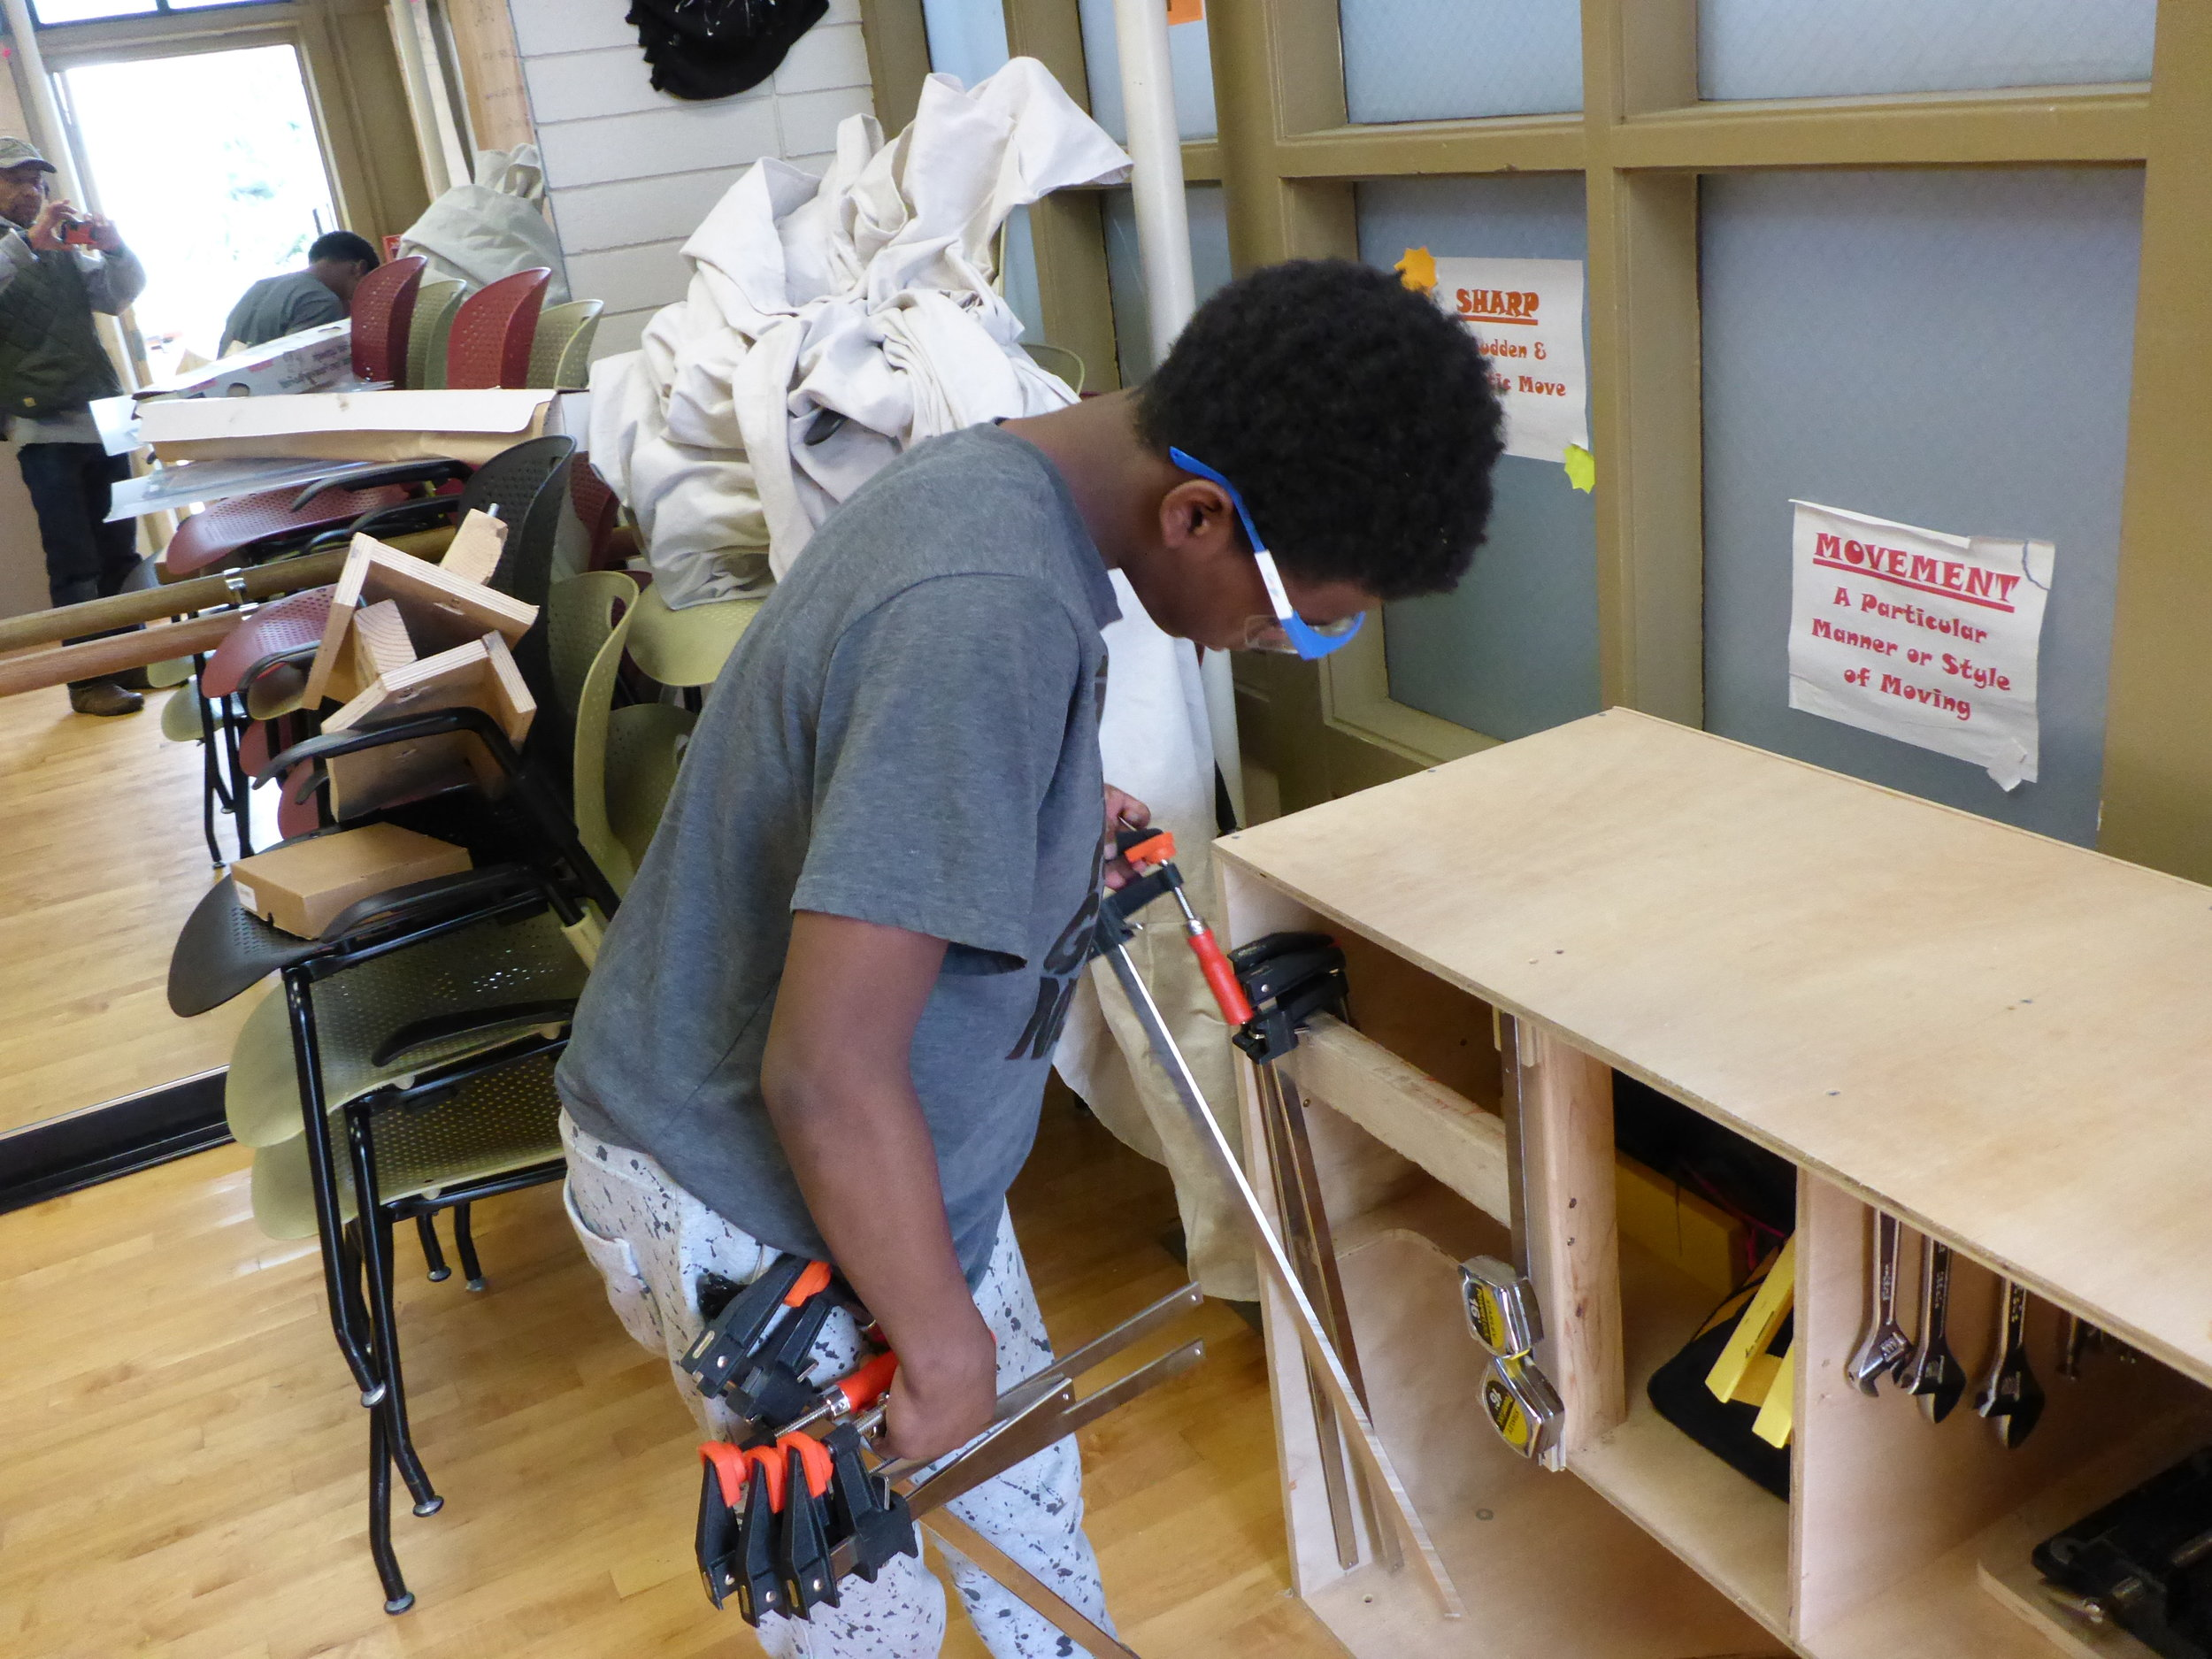 Malieke grabs a couple handfuls of clamps. We needed them to hold our clubhouse together before we could secure it with screws.